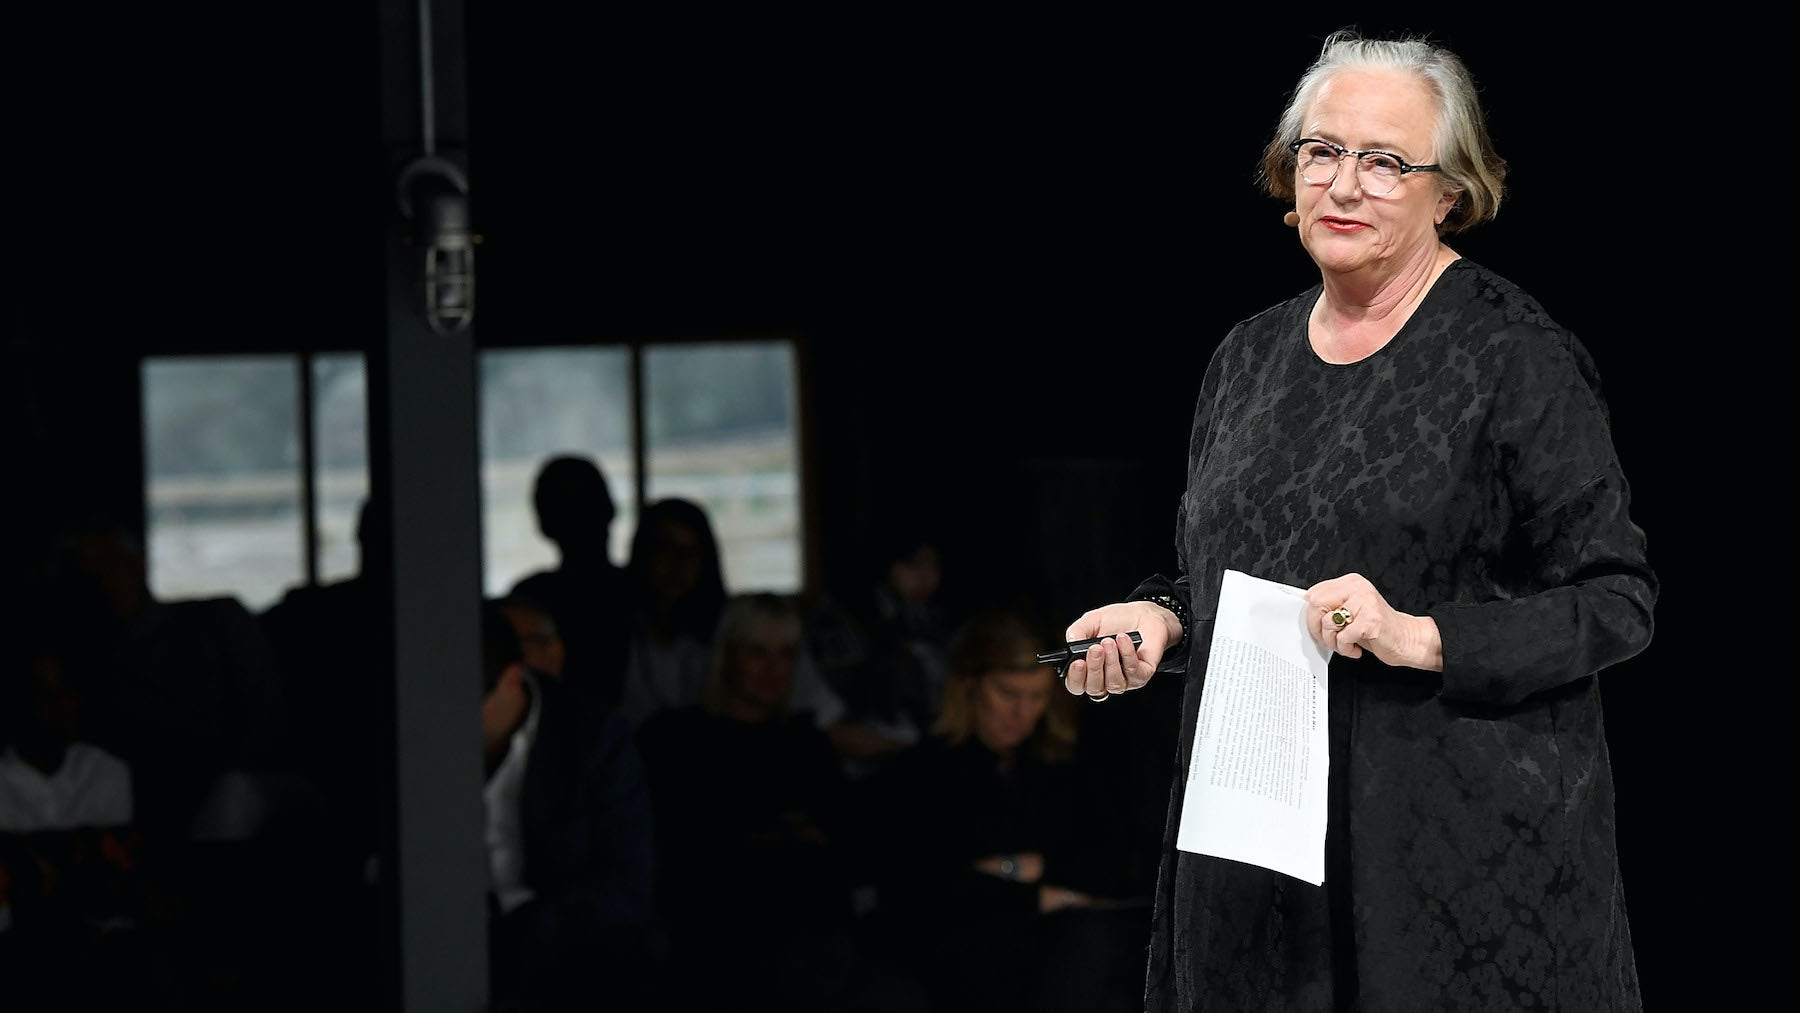 Li Edelkoort on the VOICES stage | Source: Getty